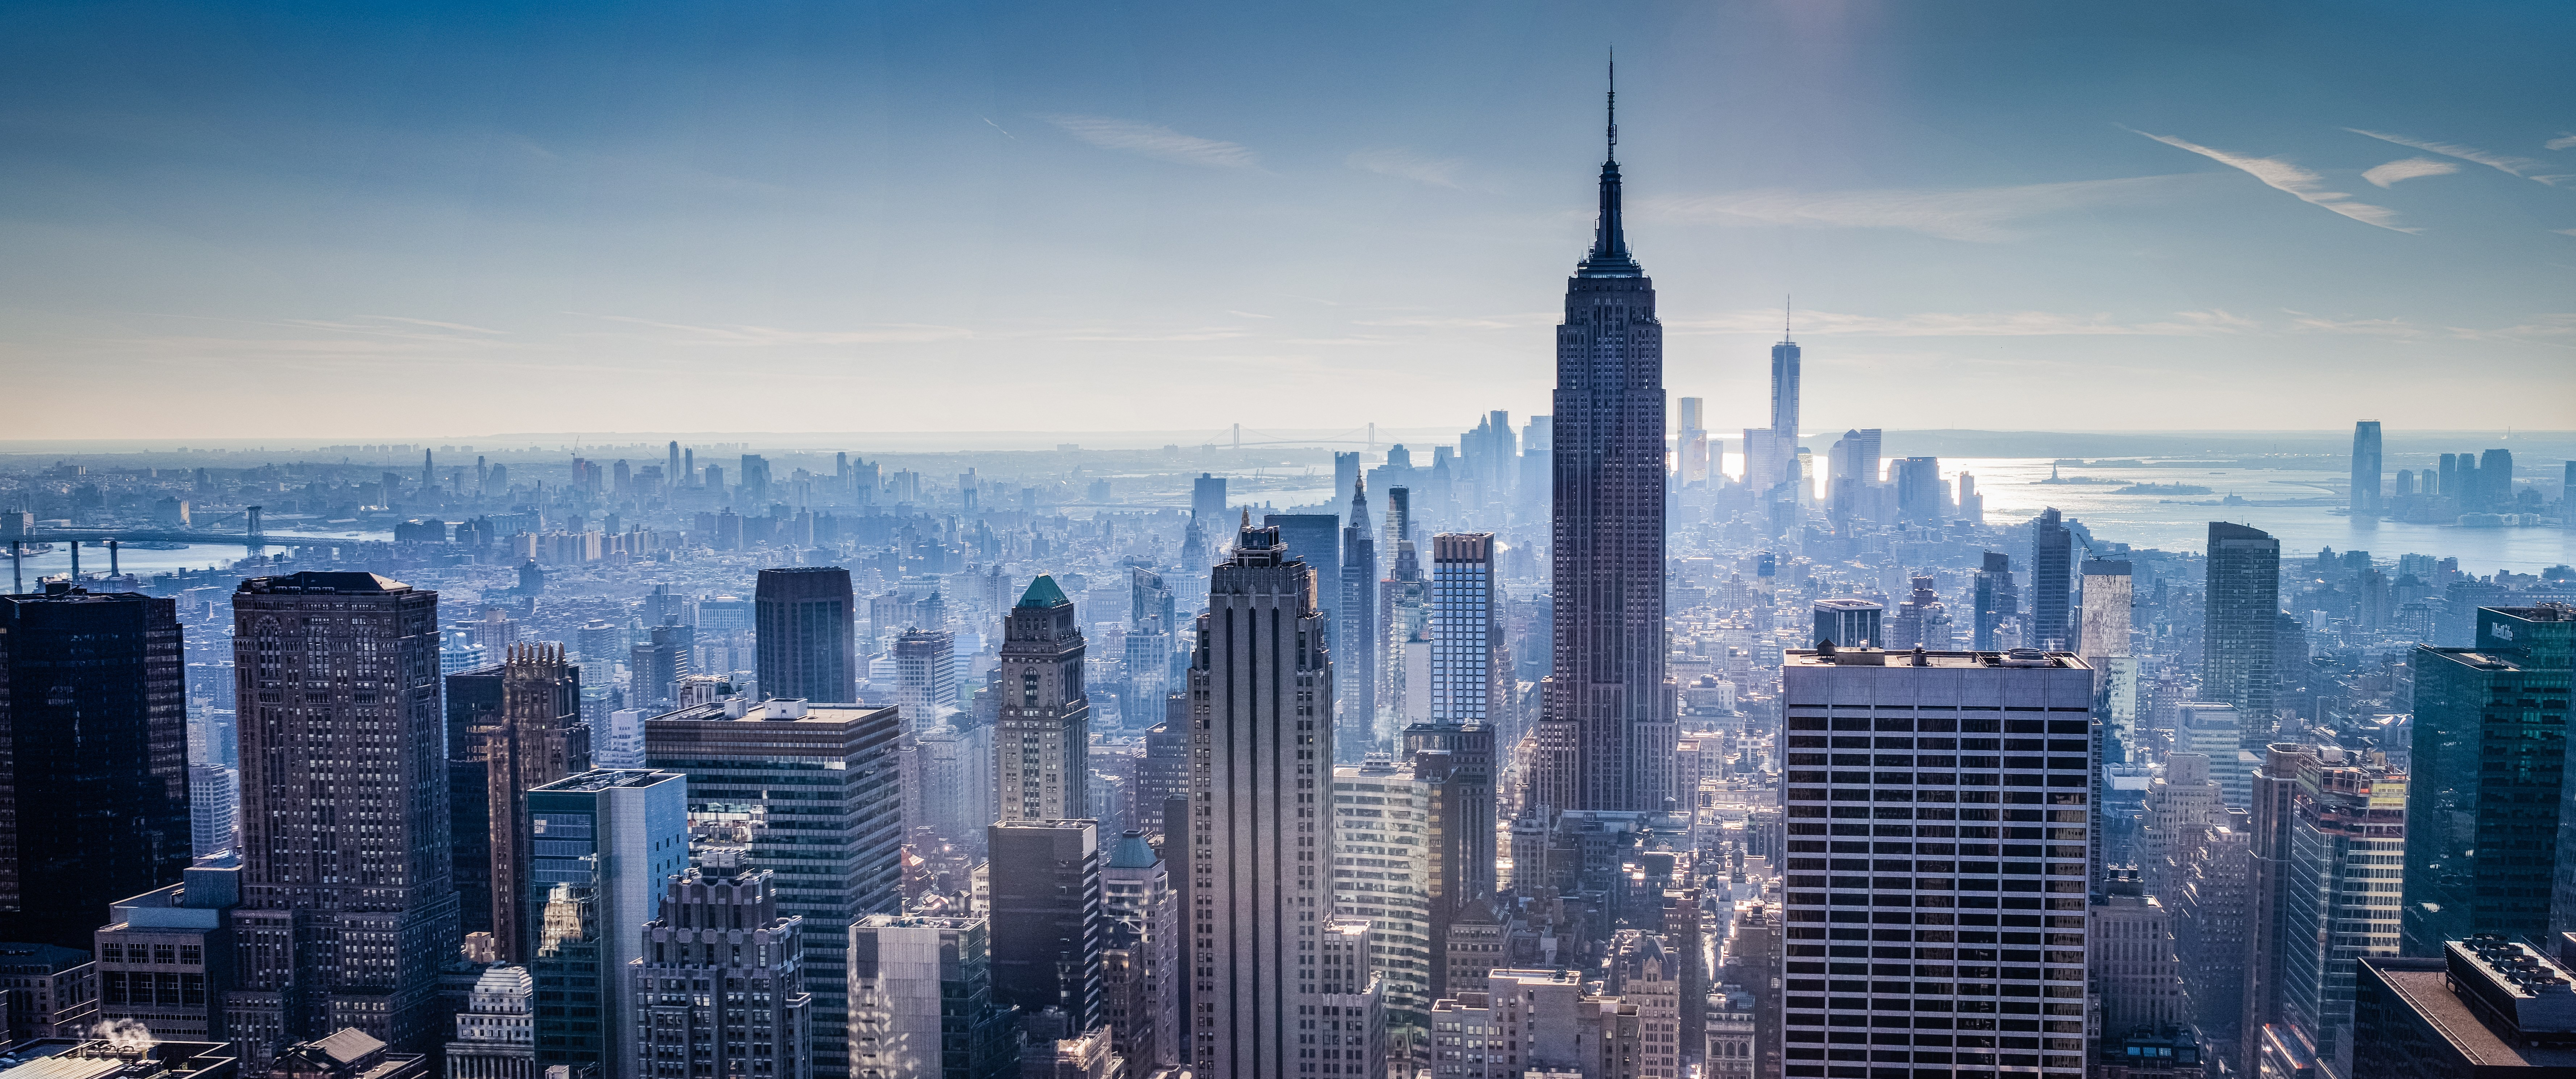 1920x1080 New York City Wide 8k Laptop Full Hd 1080p Hd 4k Wallpapers Images Backgrounds Photos And Pictures